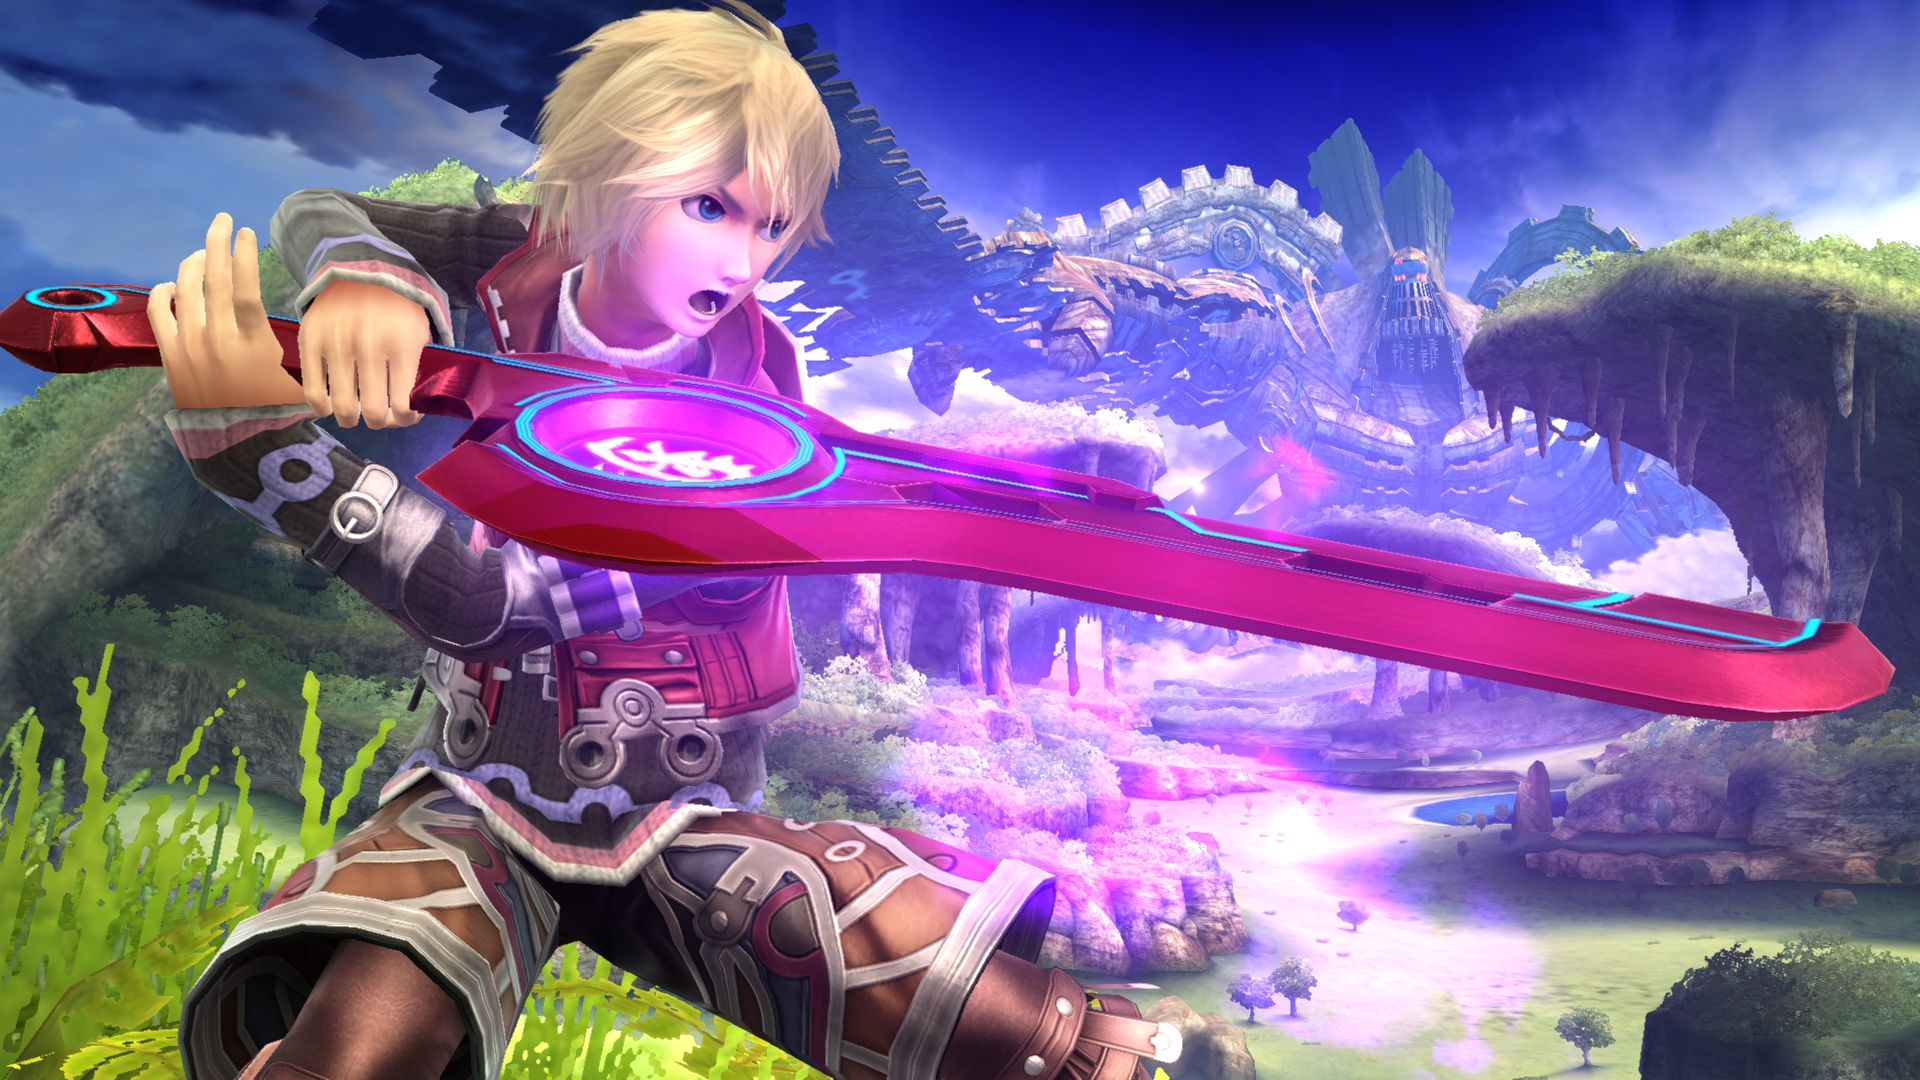 Super-Smash-Bros-for-Wii-U-Shulk-Announcement-Trailer-07 ...